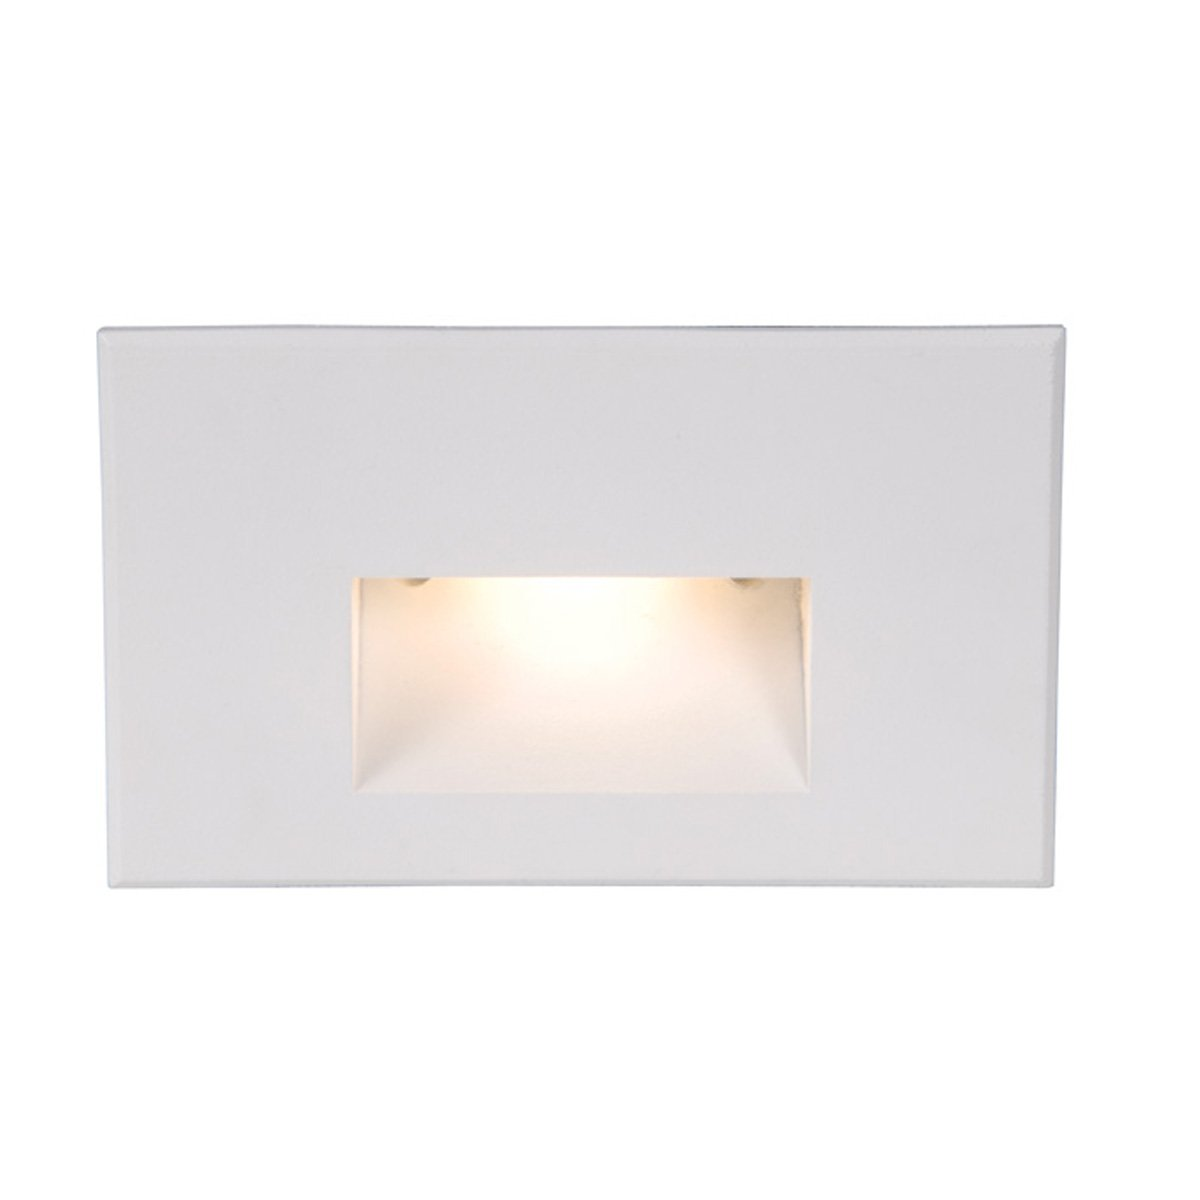 WAC Lighting WL-LED100-C-WT Rectangular Scoop 4W 120V LED Step Light with Cool White Lens and White Finish